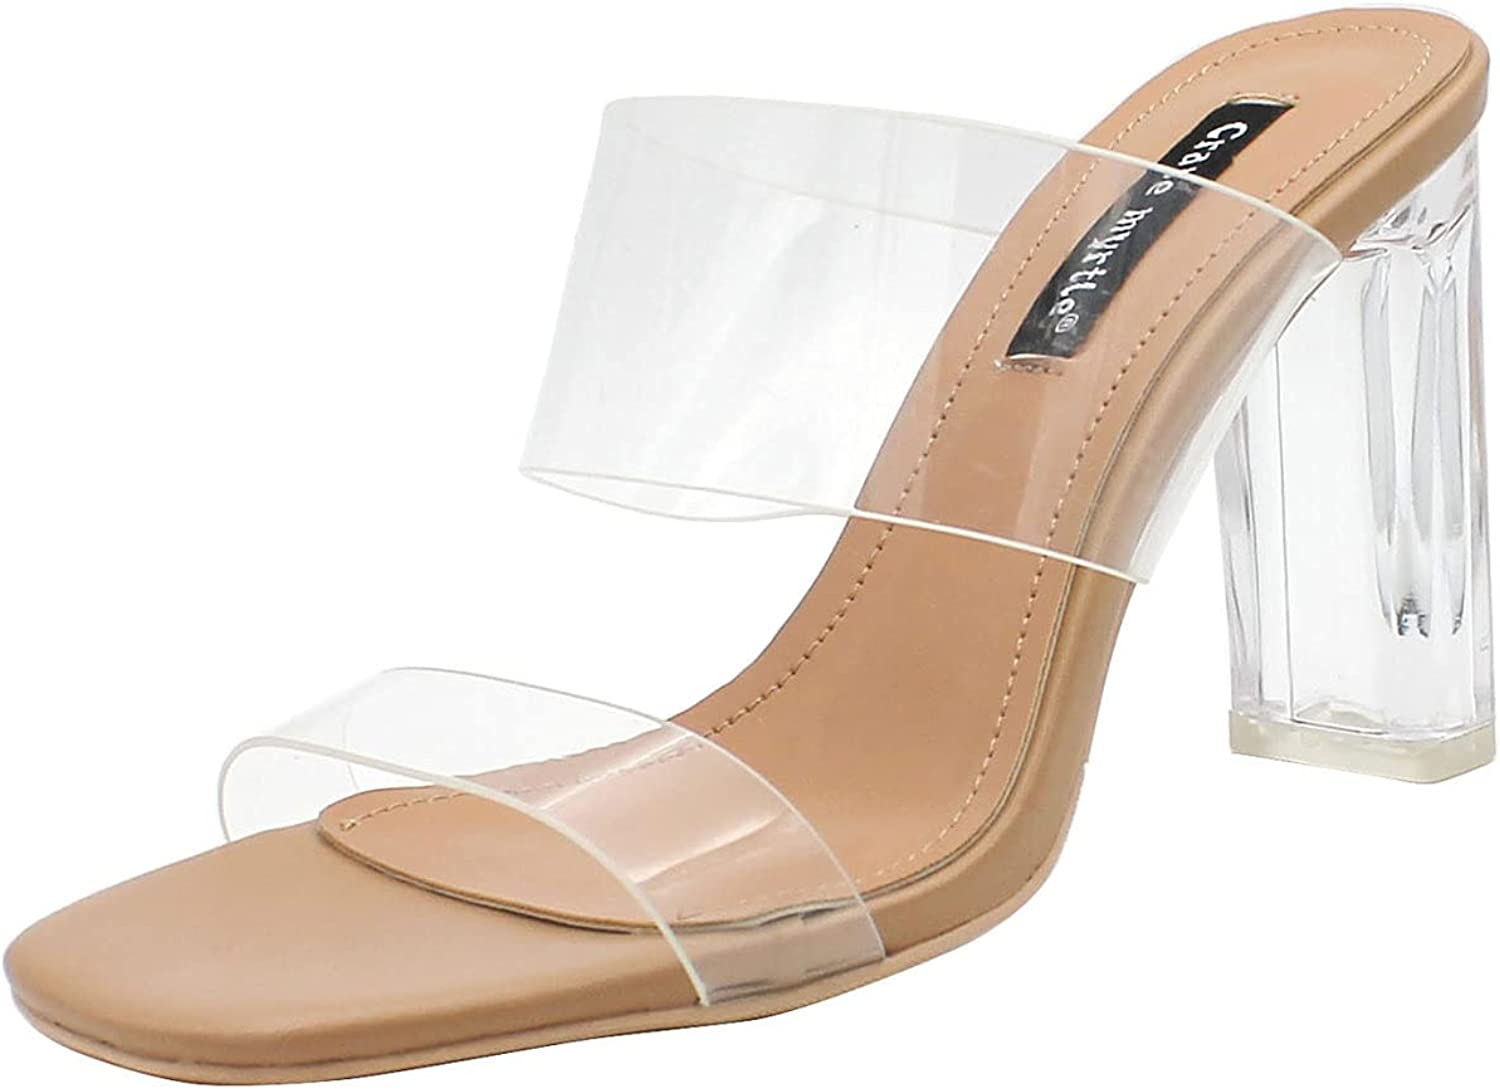 Woman Clear Ankle Strap High Block Heels Sandal with Open Square Toe Summer Daily Slip-on Ladies Slides Apricot